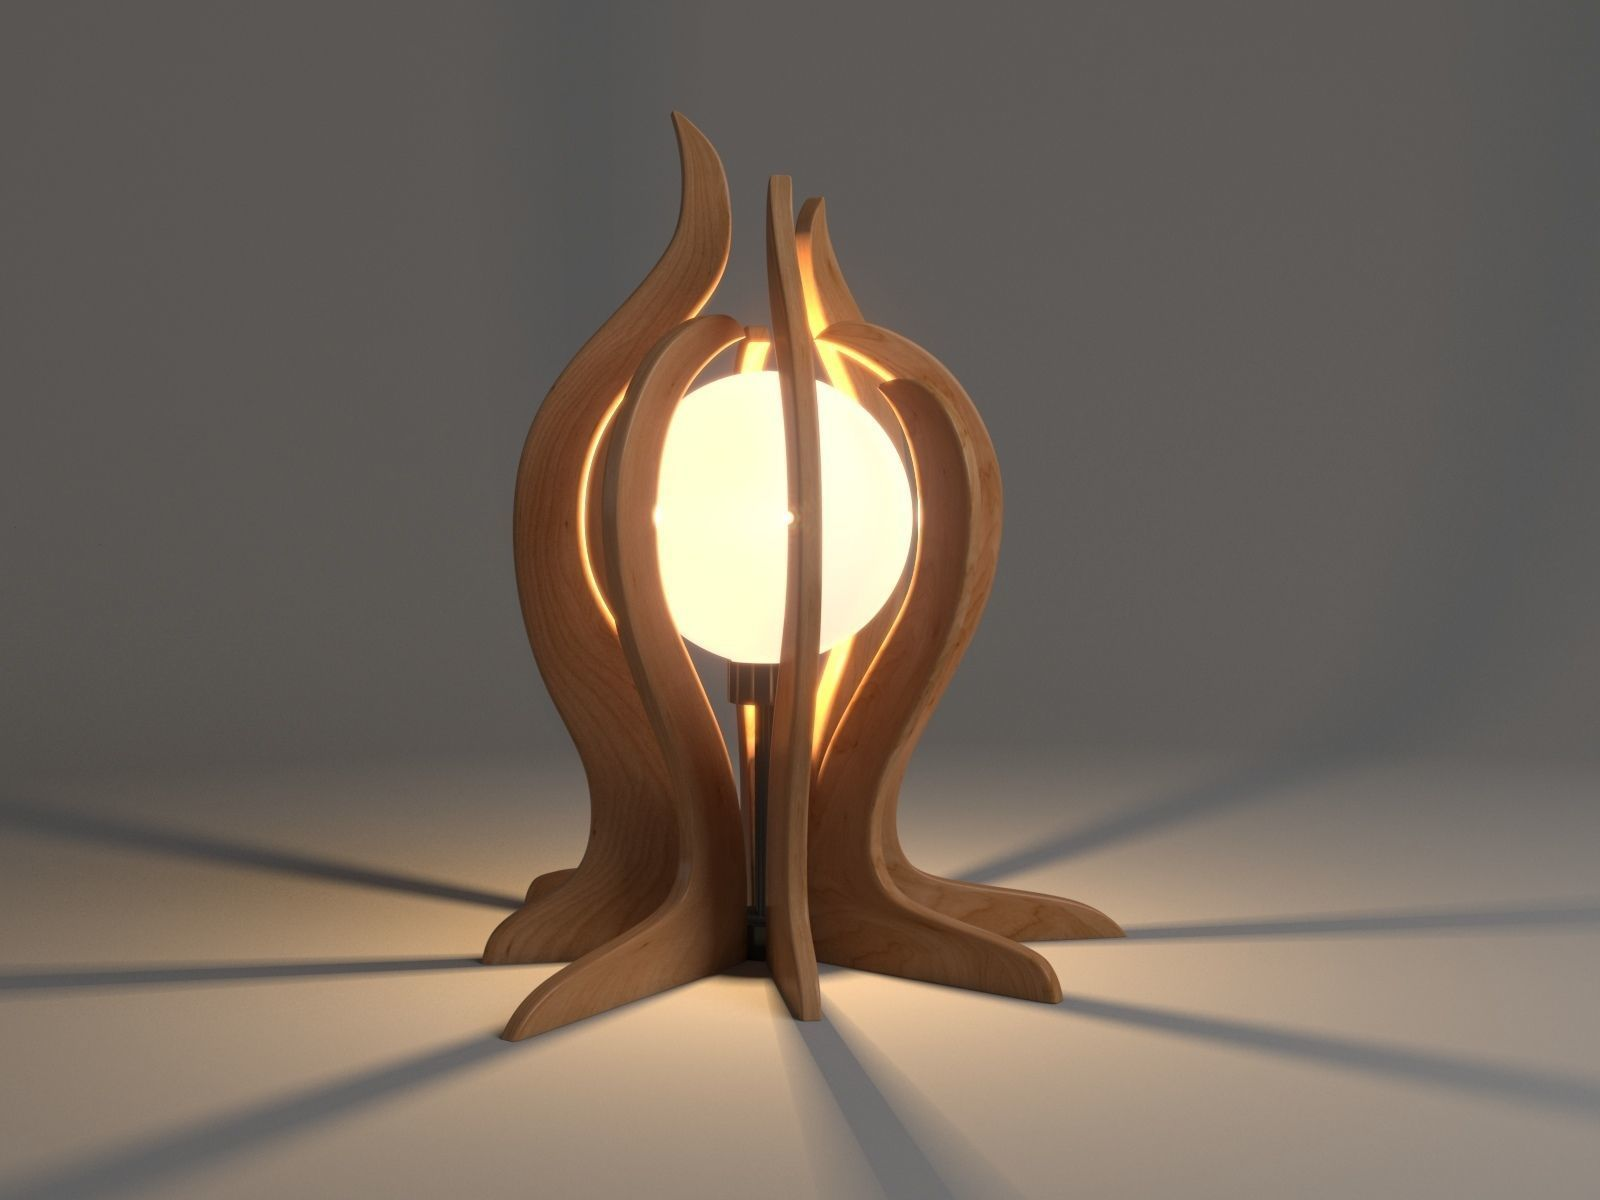 Wooden Garden And Table Lamp Design